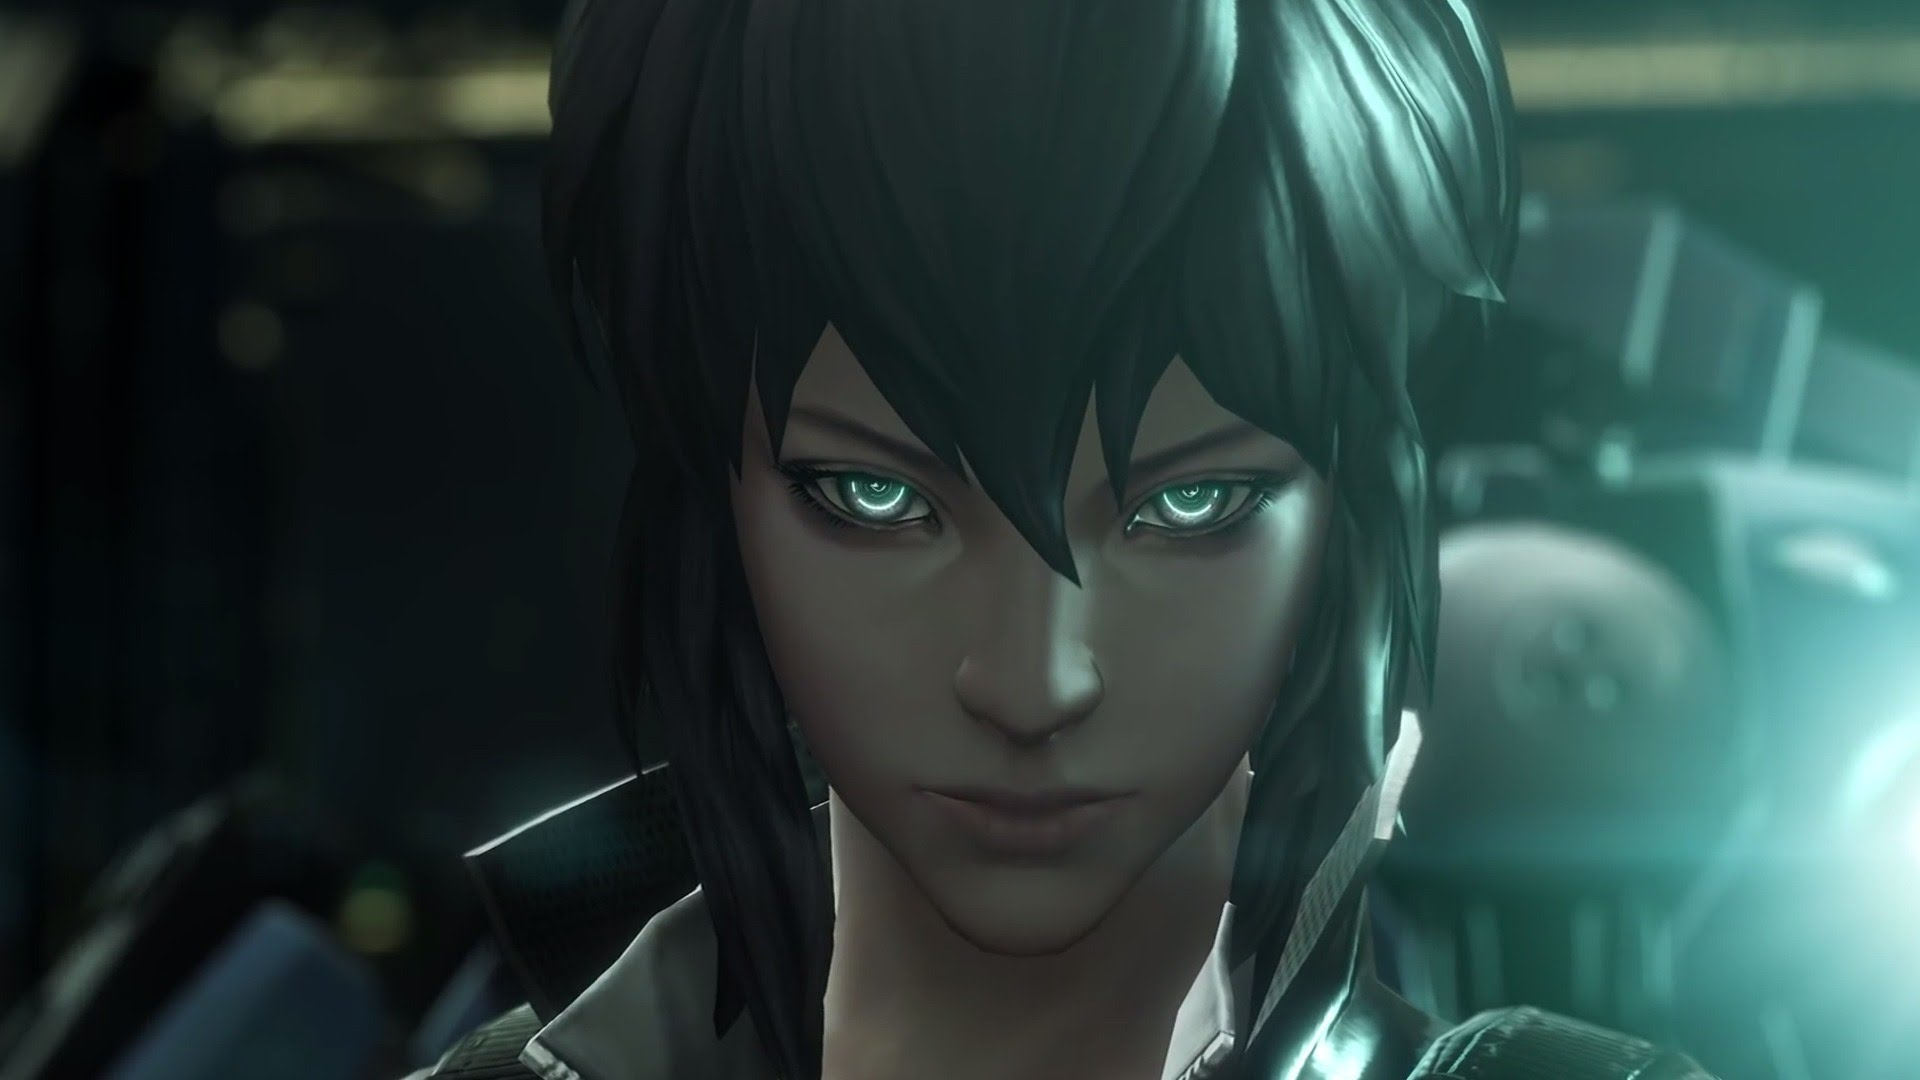 Steam Having A Special Anime Weekend Sale Ghost In The Shell First Assault Motoko Kusanagi 1920x1080 Wallpaper Teahub Io